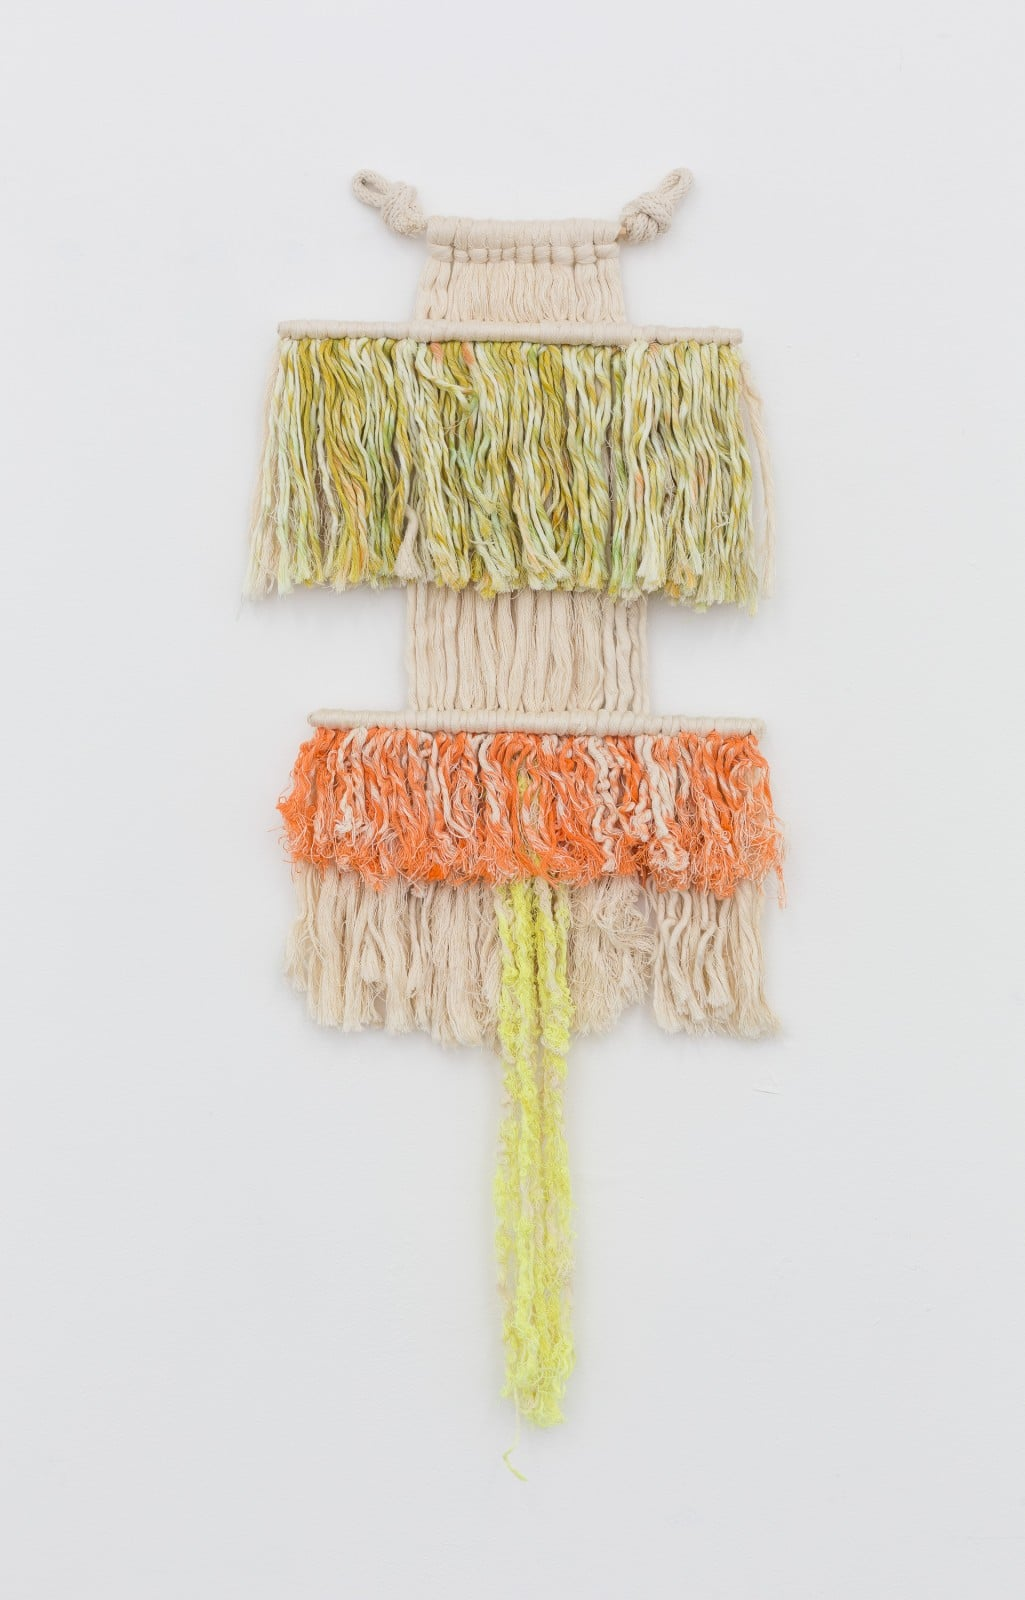 Untitled , 2015    Natural and hand-dyed rope    32 x 12 x 2 in